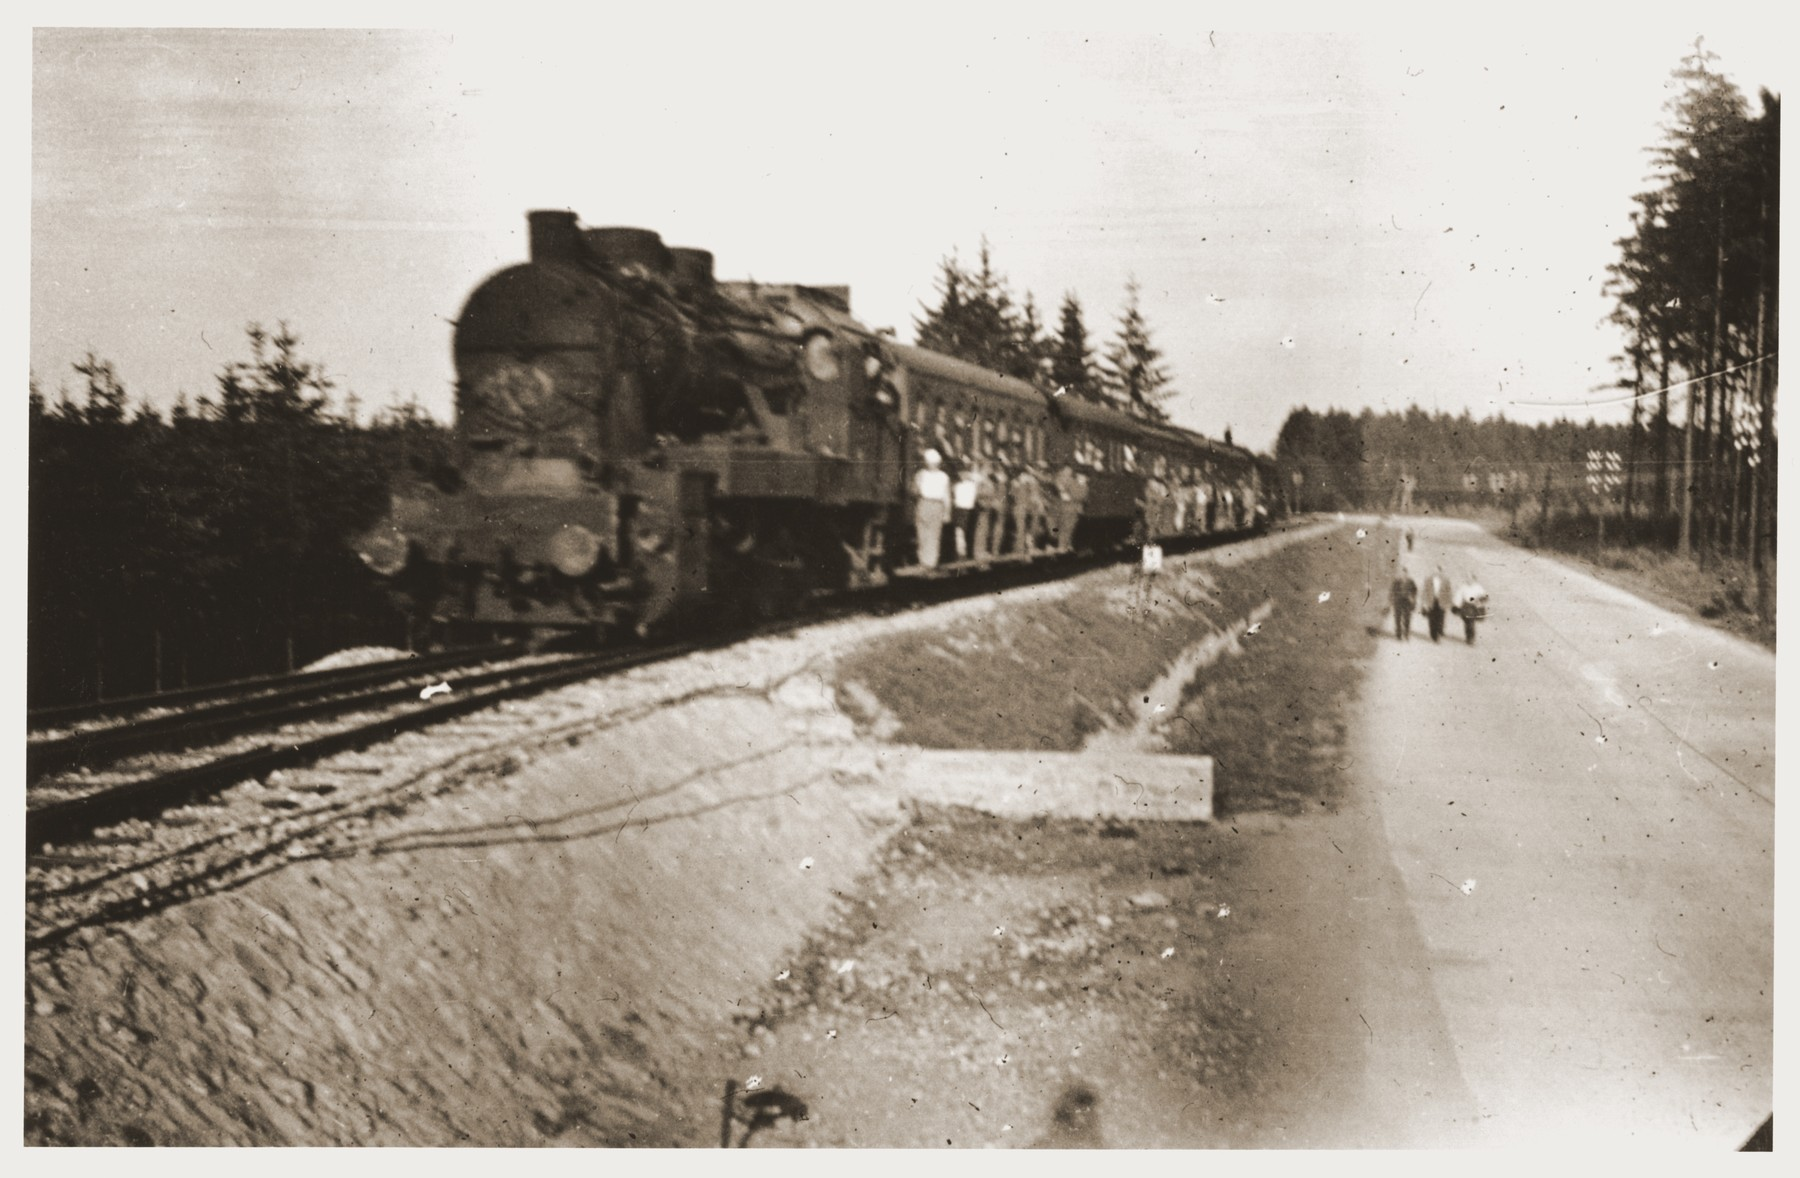 View of a repatriation train leaving Buchenwald.